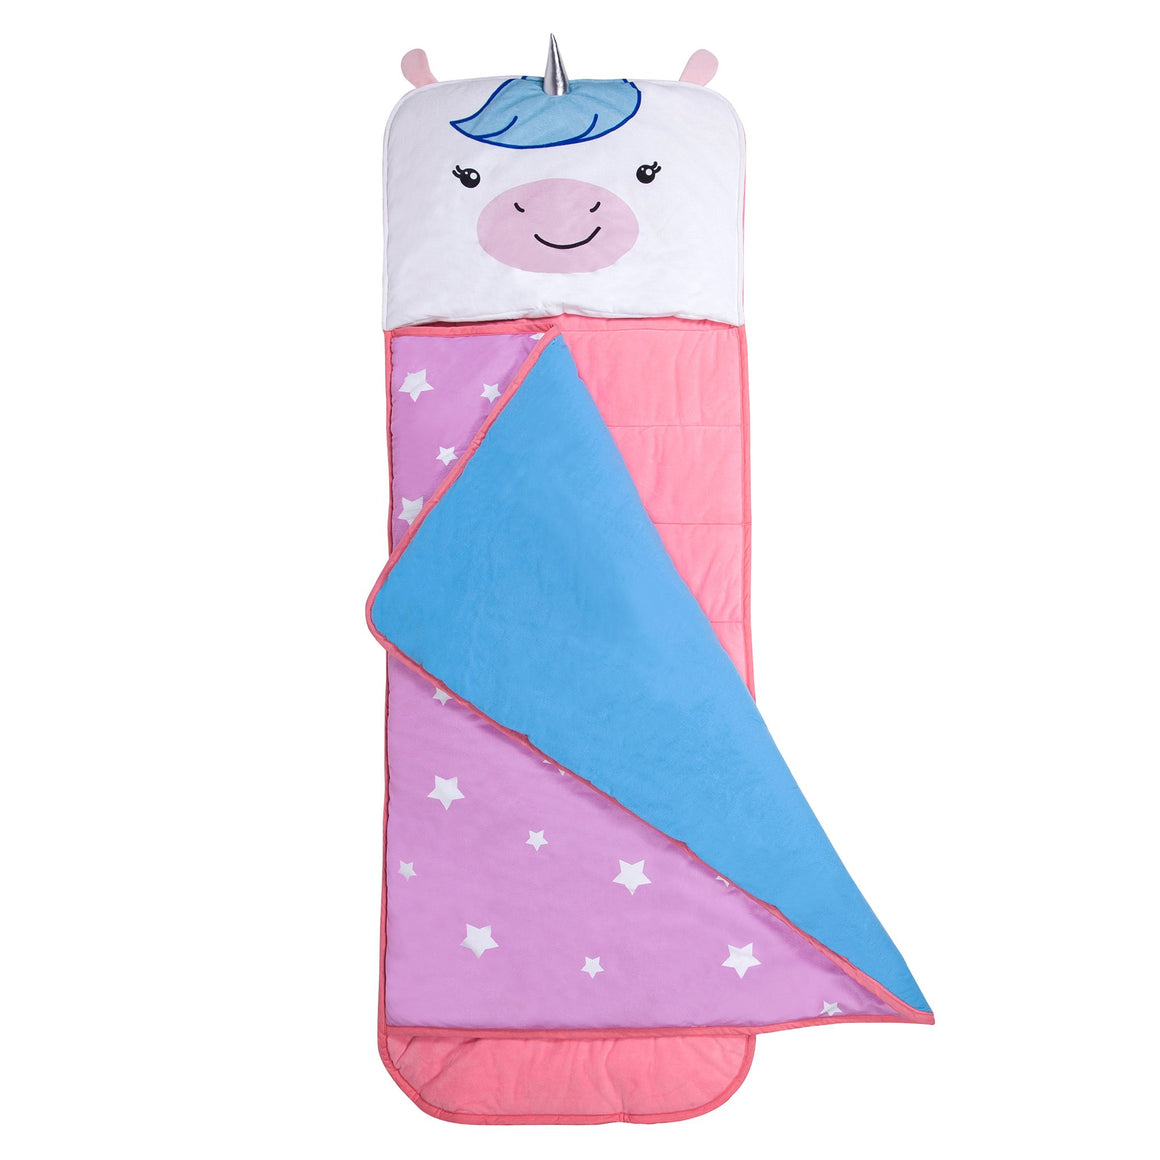 Wildkin Olive Kids | Wild Bunch Unicorn Plush Nap Mat (Arriving First Week of August)